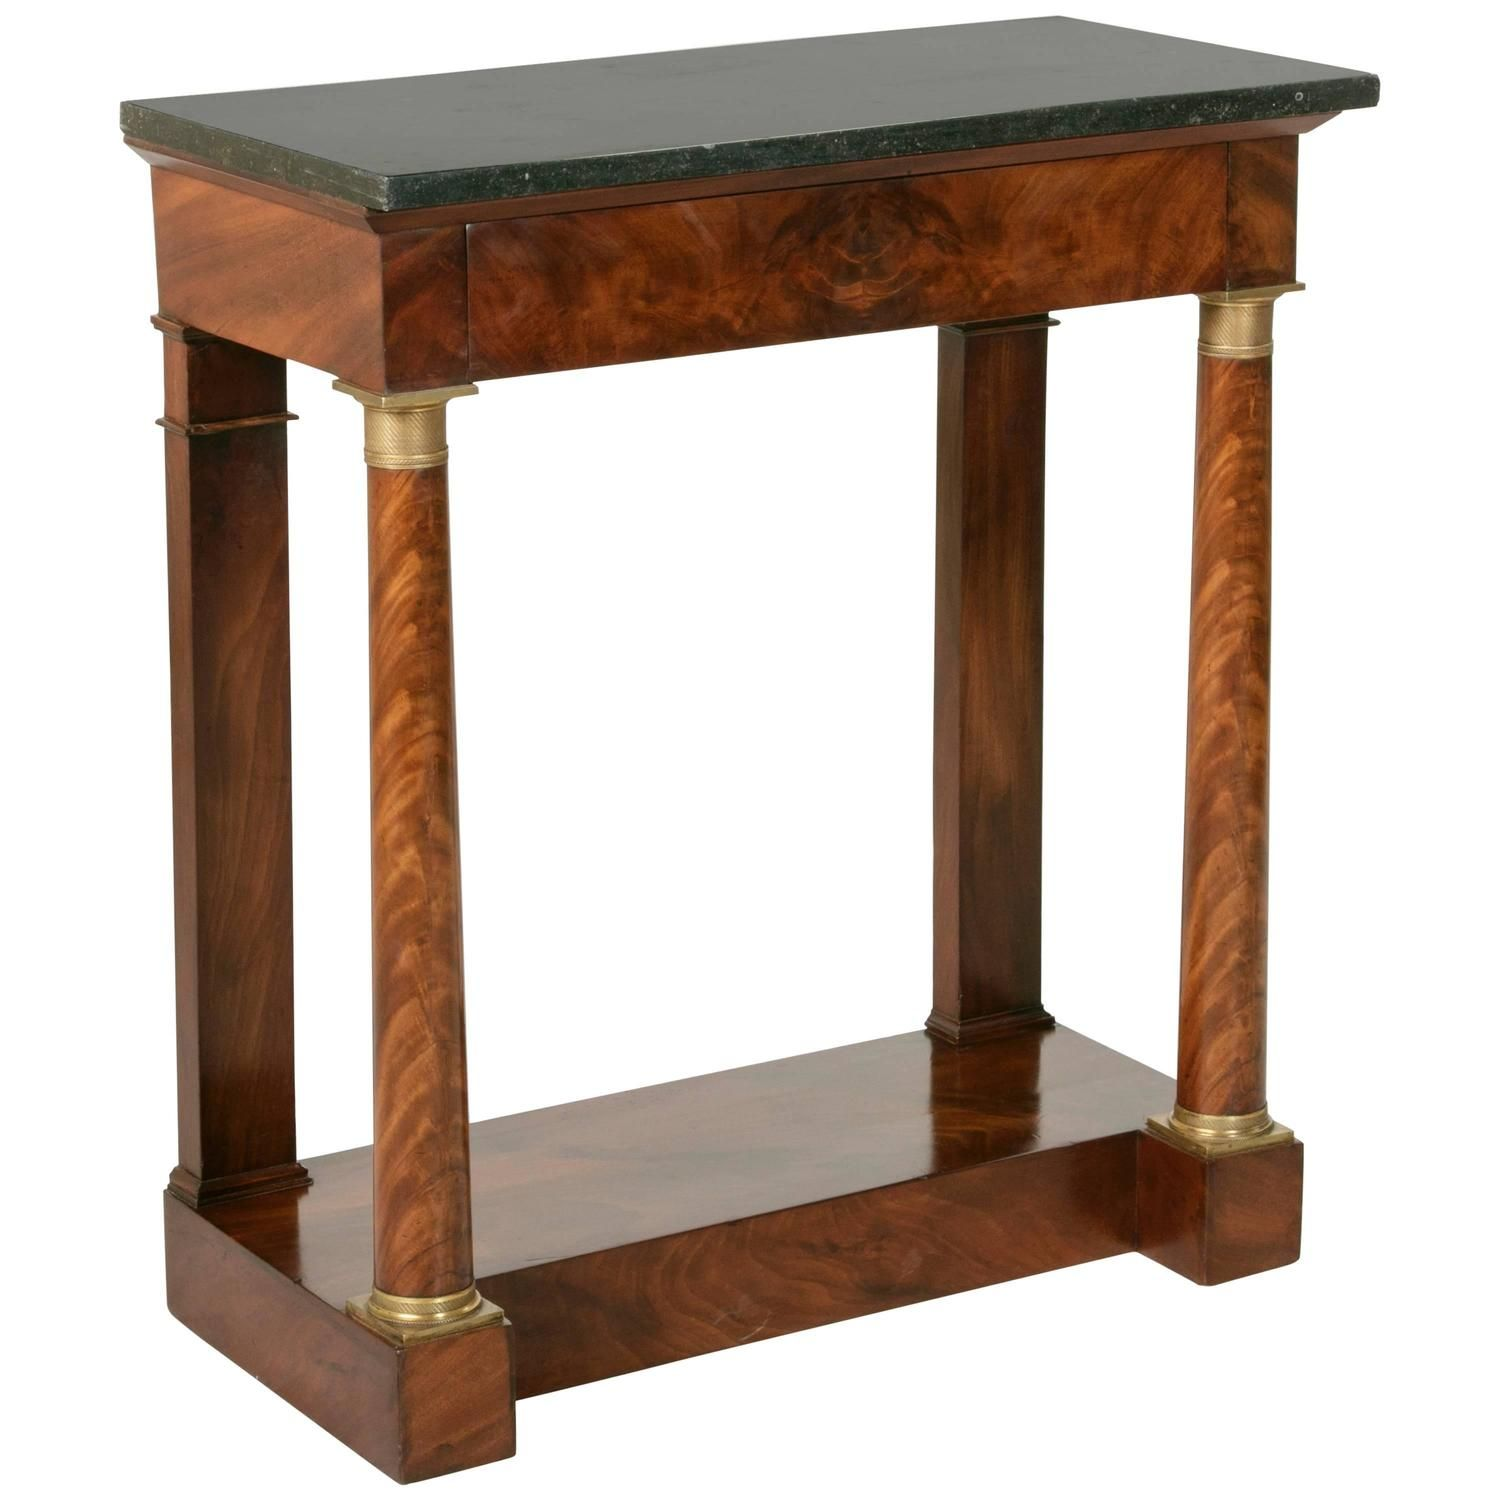 Period Empire Flamed Mahogany Console Table With Columns And Black Marble With Images Black Marble Mahogany Console Table